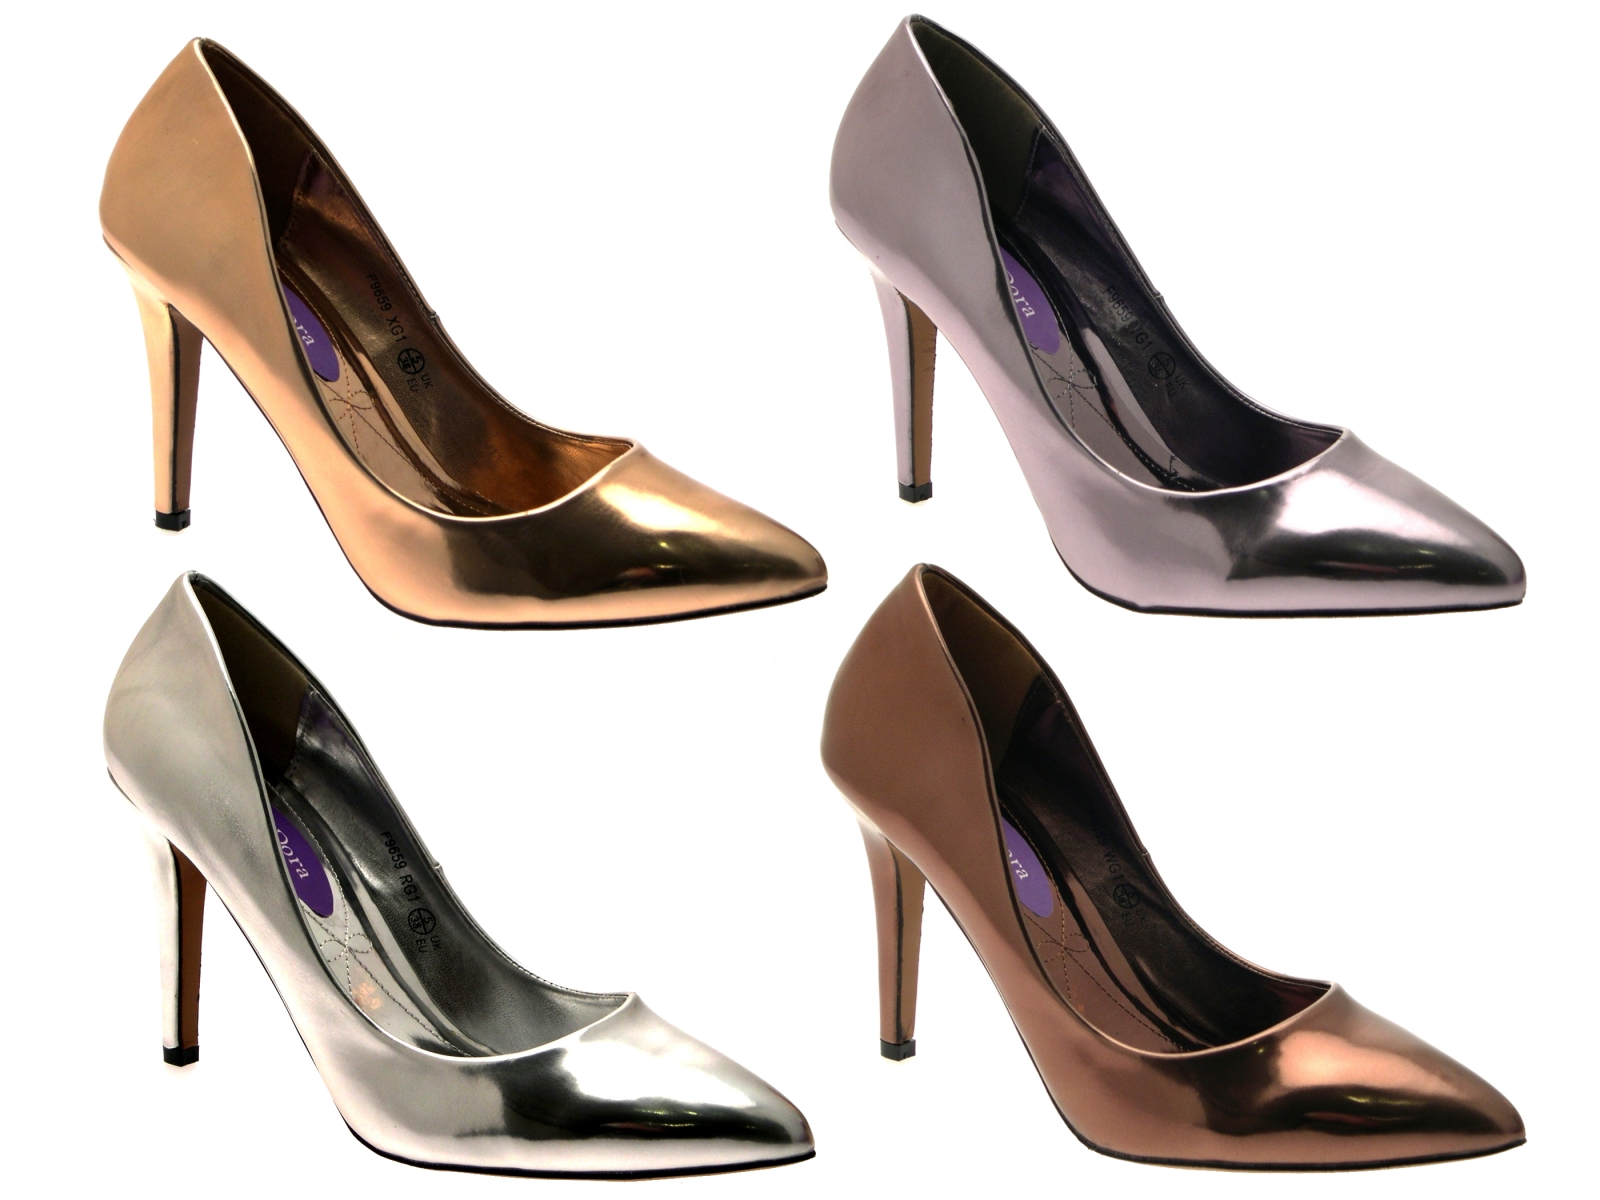 Womens-Metallic-Pointed-Toe-Court-Stiletto-High-Heels-Ladies-Work-Office-Shoes thumbnail 31